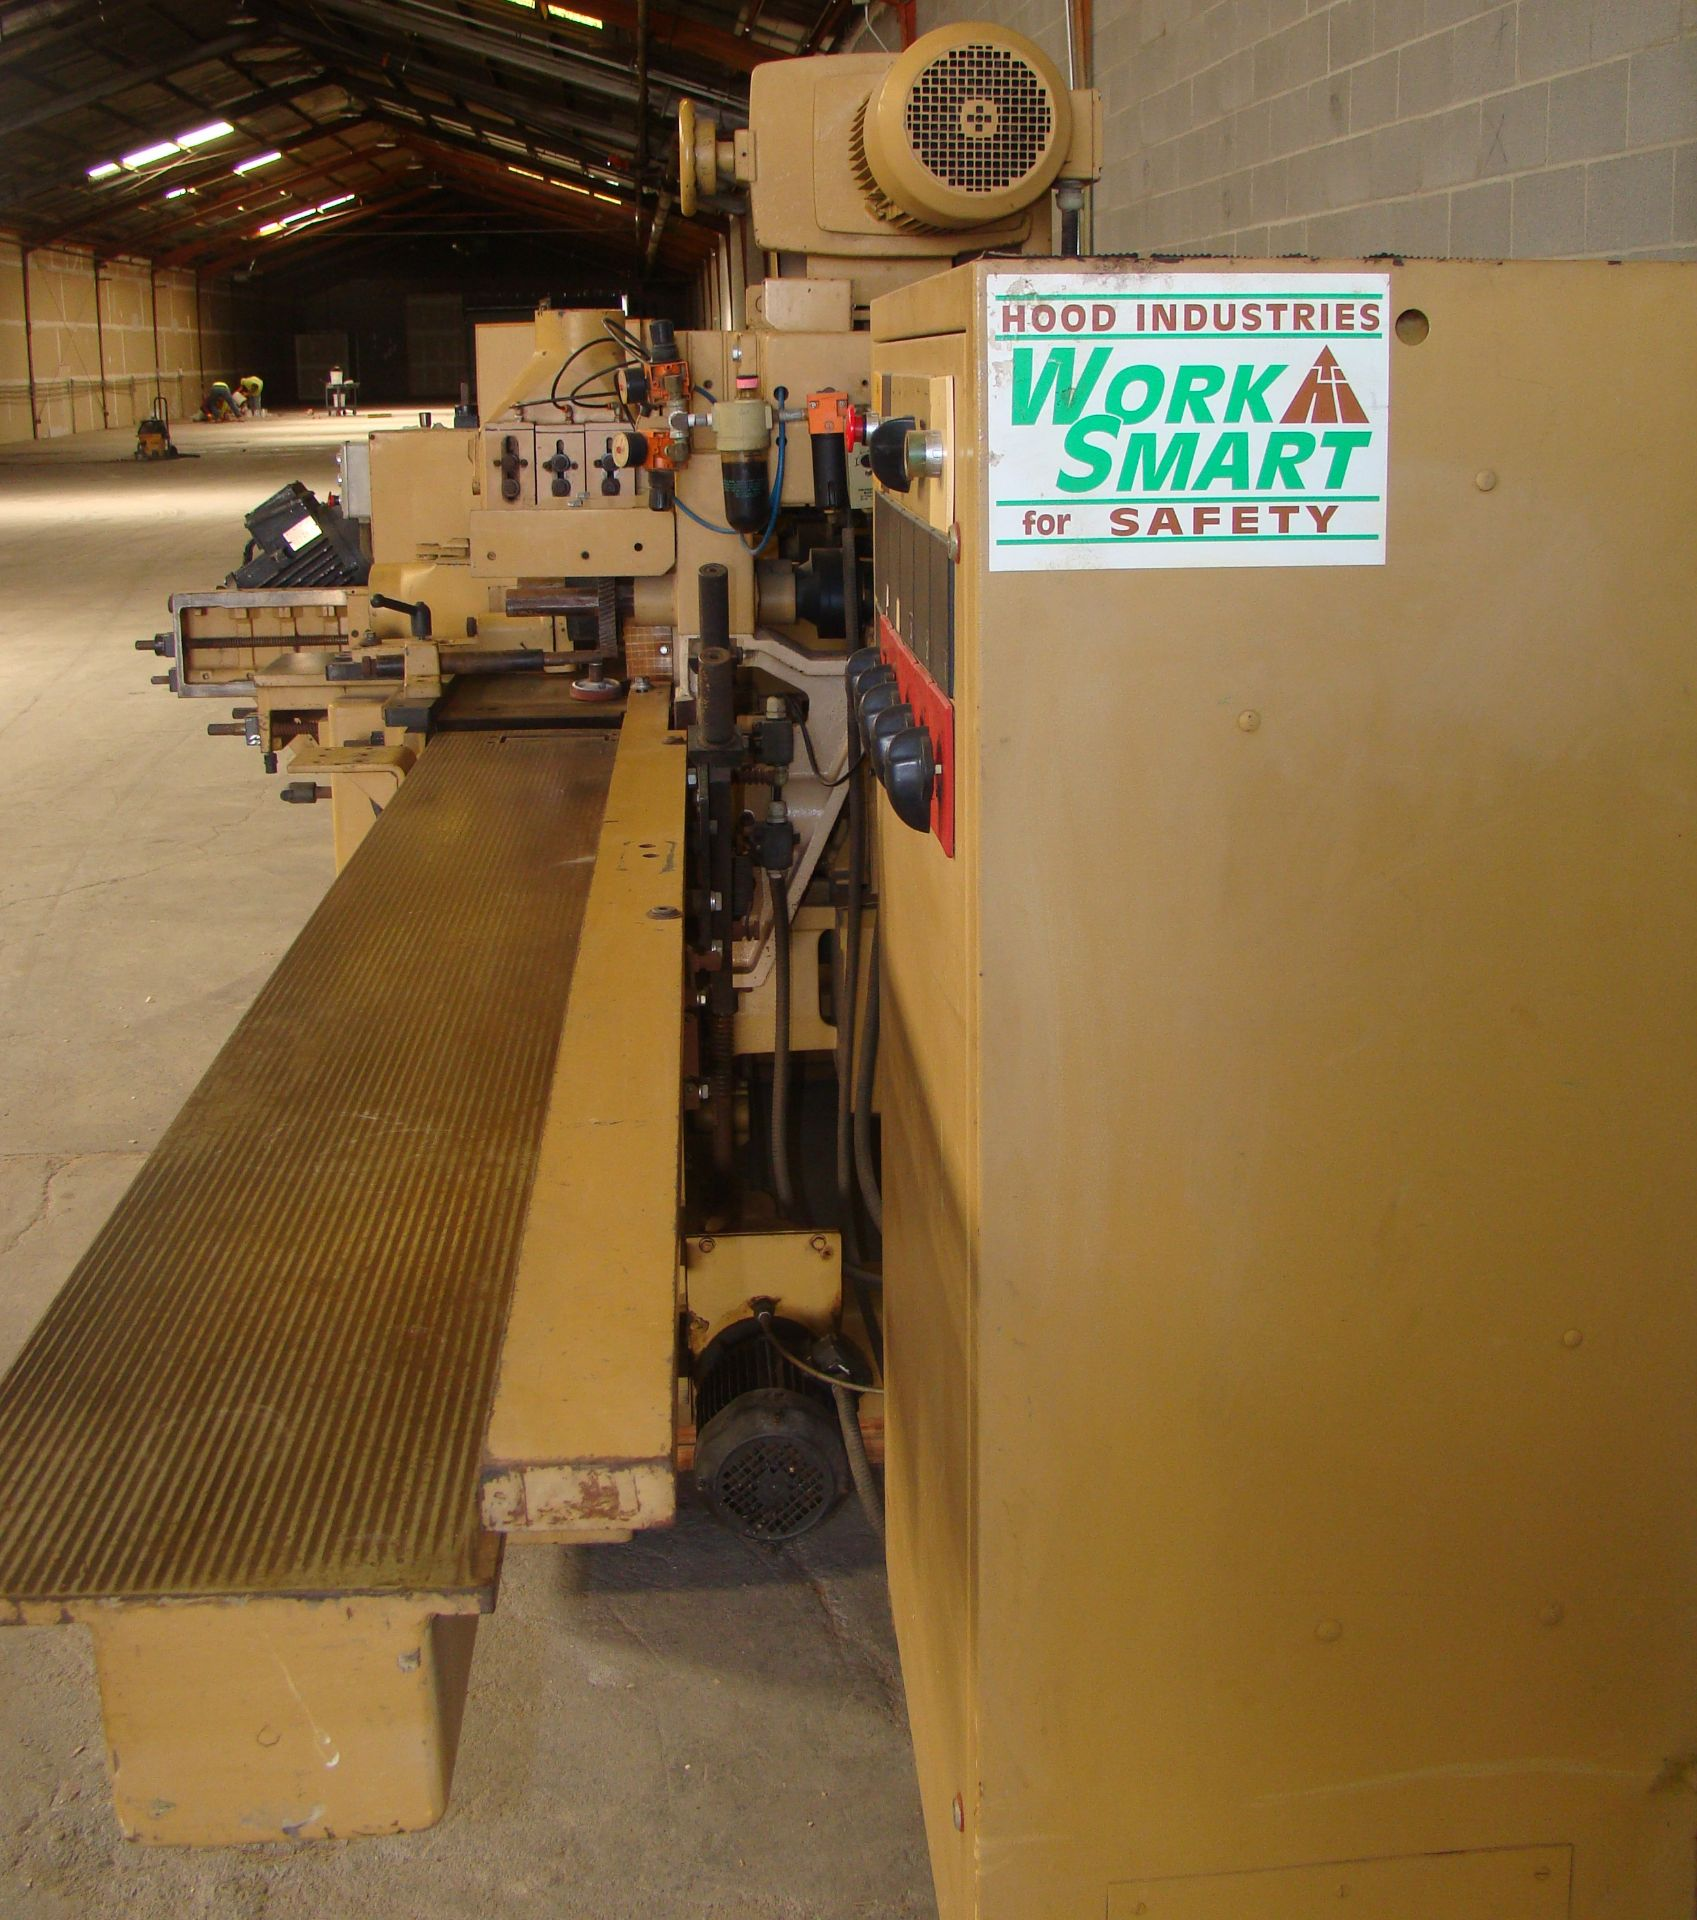 "SCMi 9"" Wood Moulder, Model: P230 5 Head 6.6HP 220/440 Volts 3Phase - Image 9 of 14"